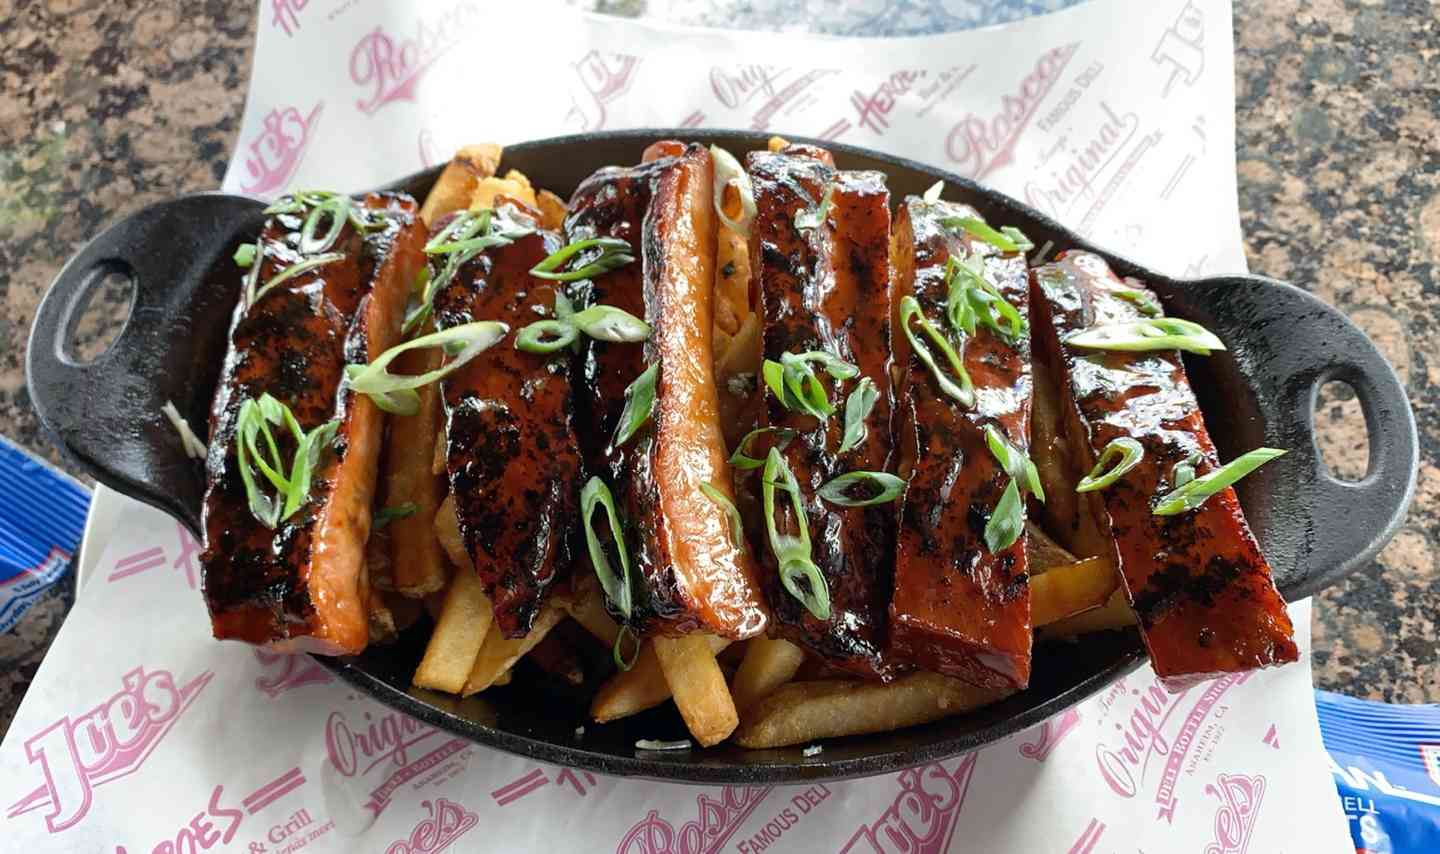 Sticky Ribs & Fries